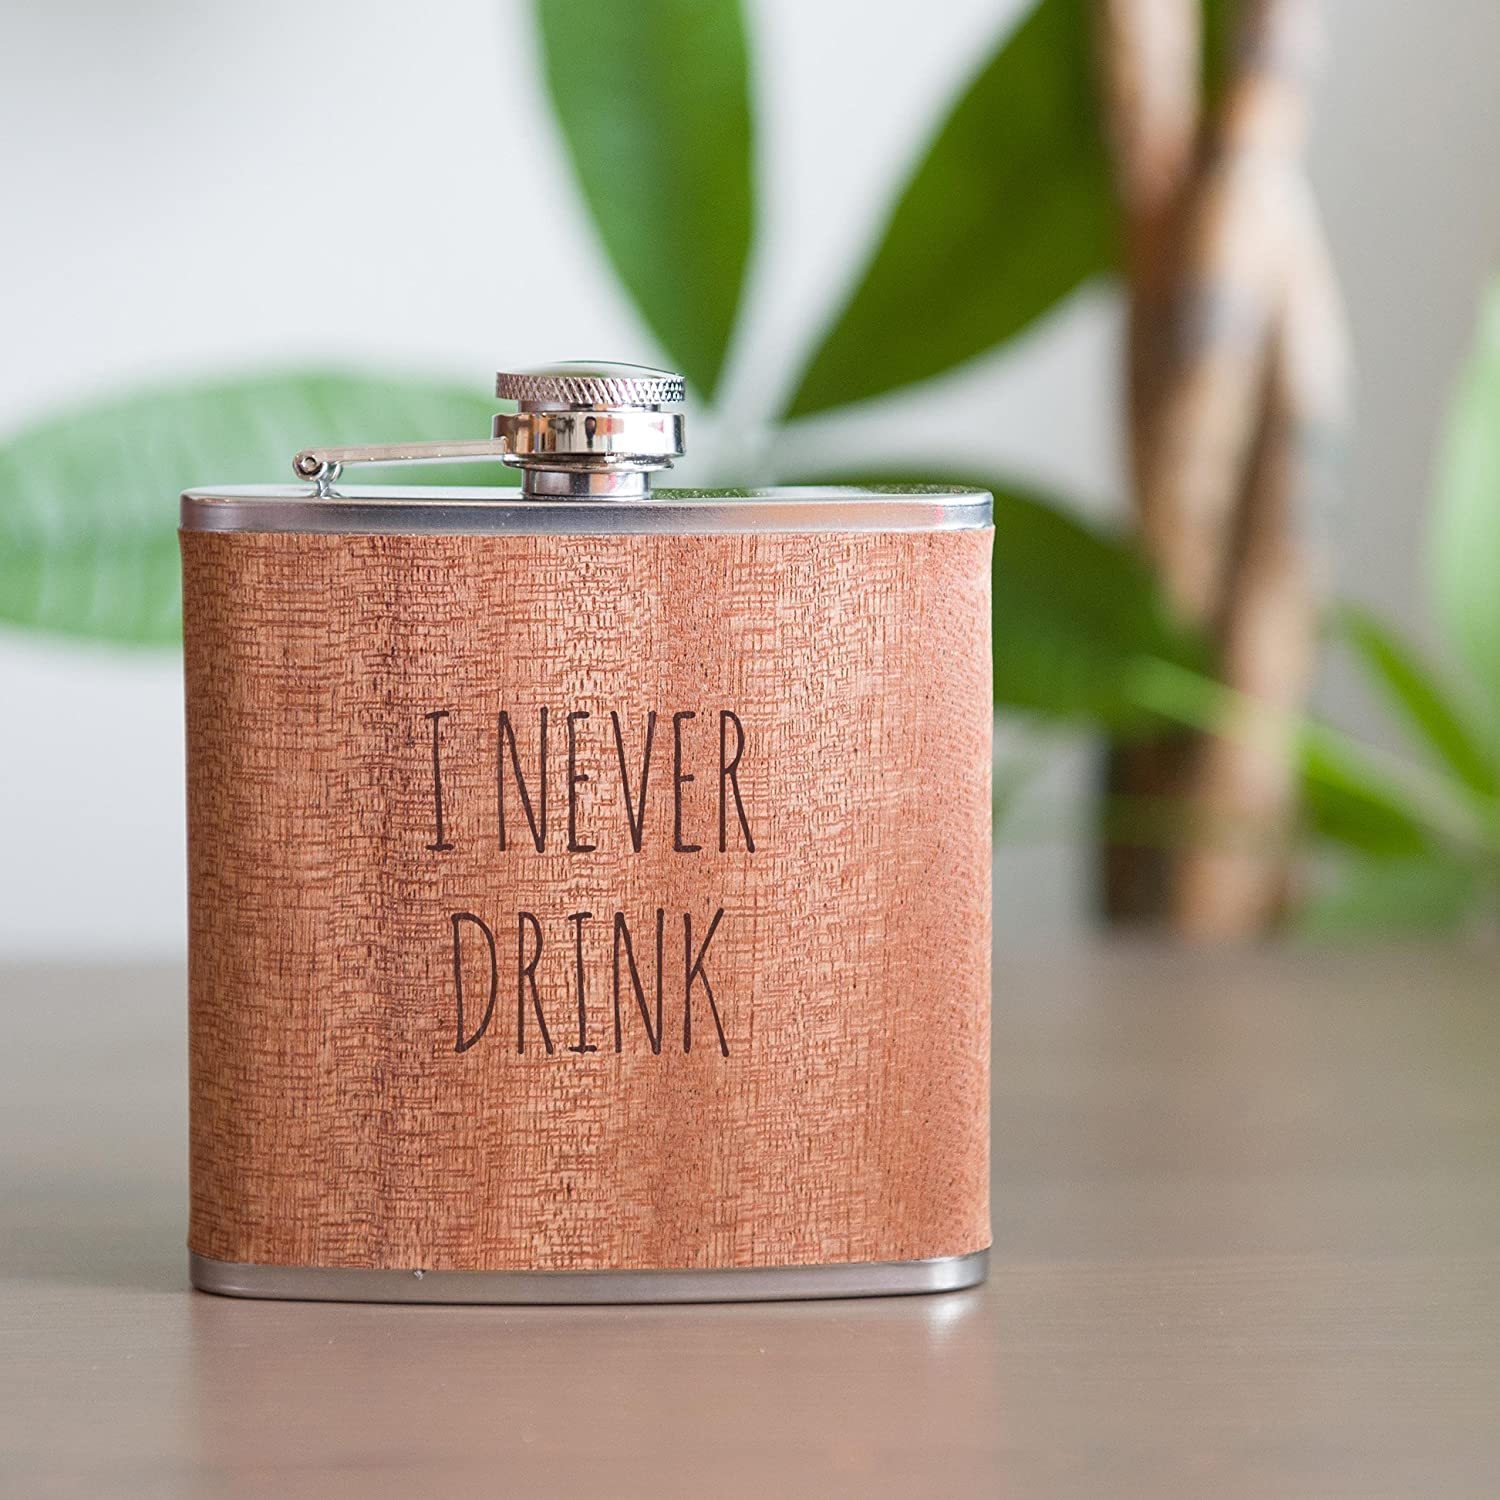 Funny Flasks - Real Wood Flask Gift, Funny Birthday Gift, Drinking Gift, Funny Gift, Bridal Party Gift 6oz Stainless Steel Wooden Free Engraving Wooden Flask